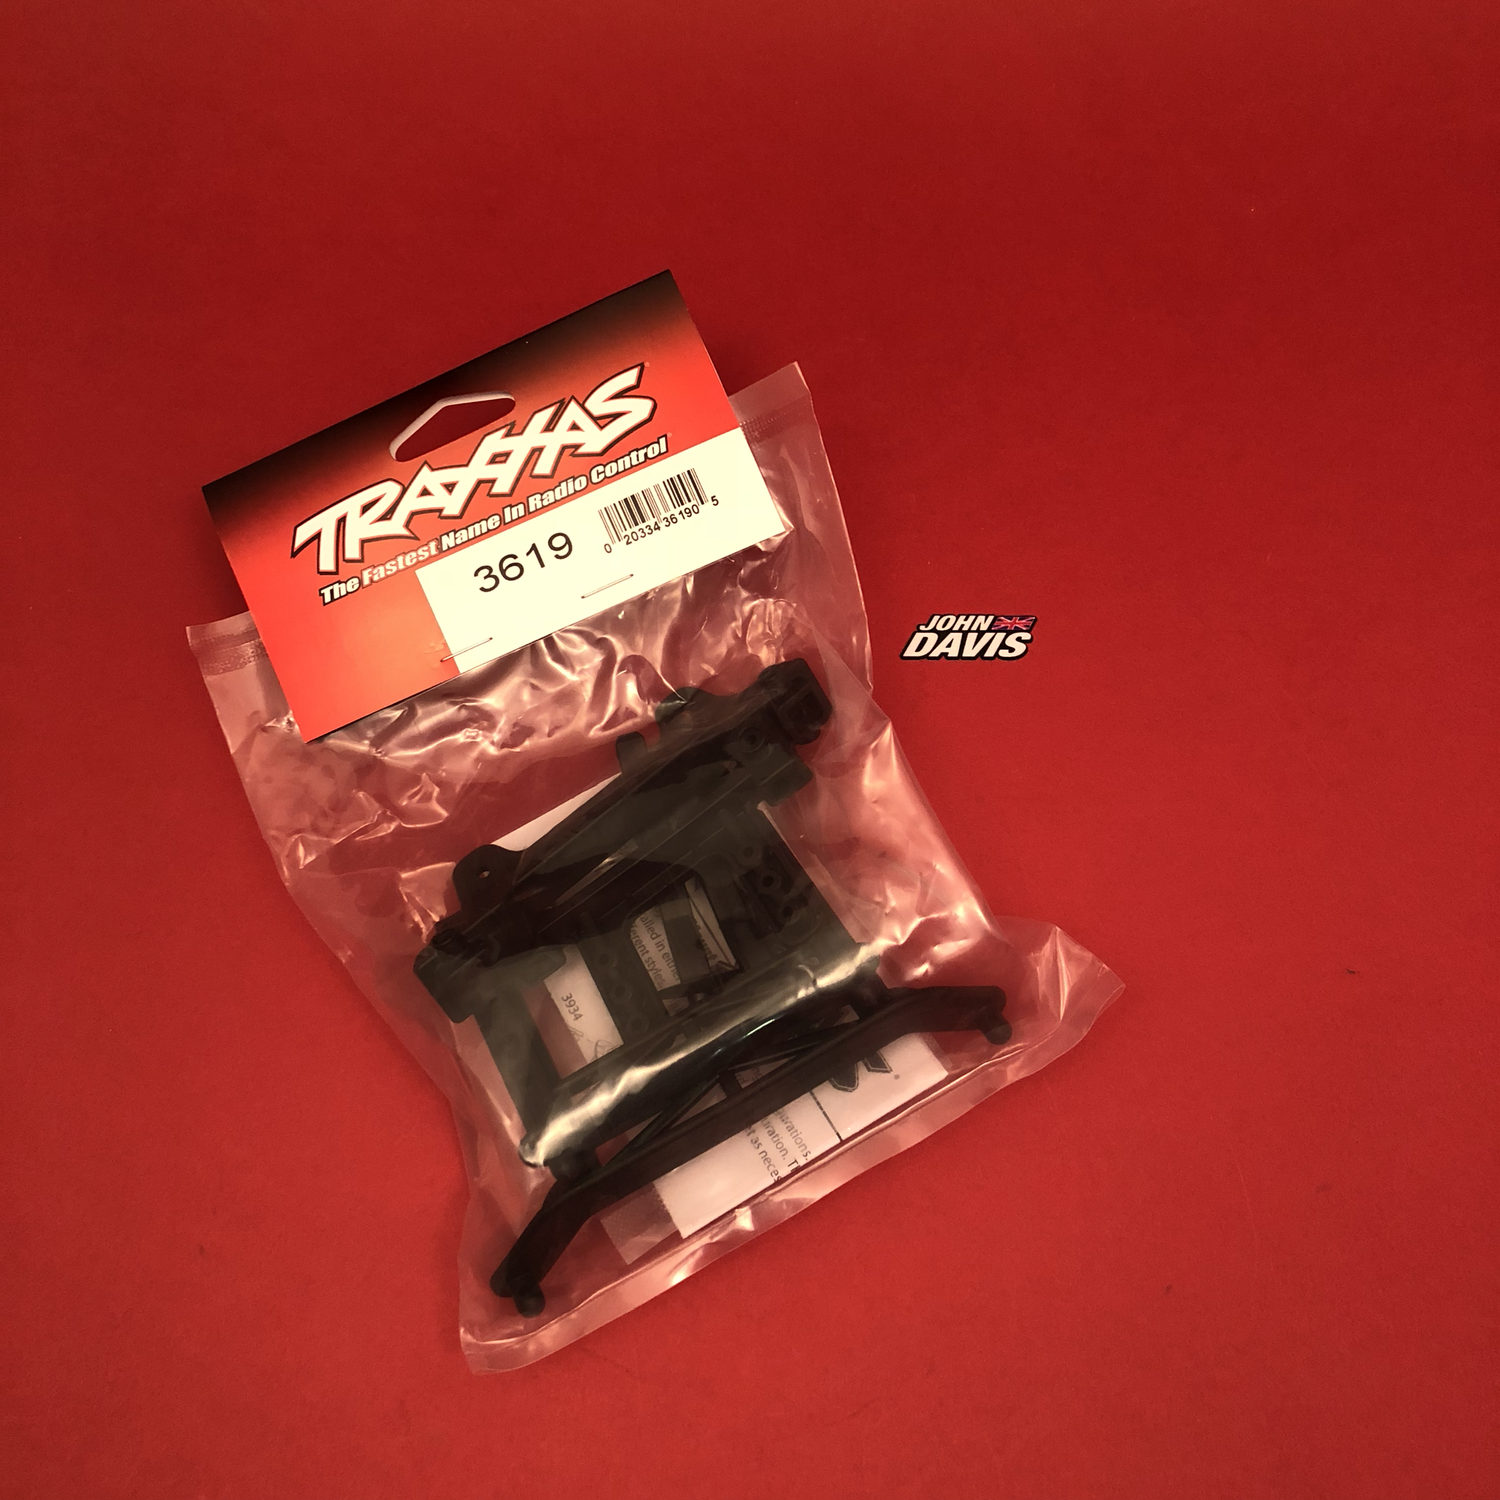 Body Mounts, Front & Rear Body Mount Posts, Front & Rear (adjustable) / 2.5x18mm Screw Pins (4)